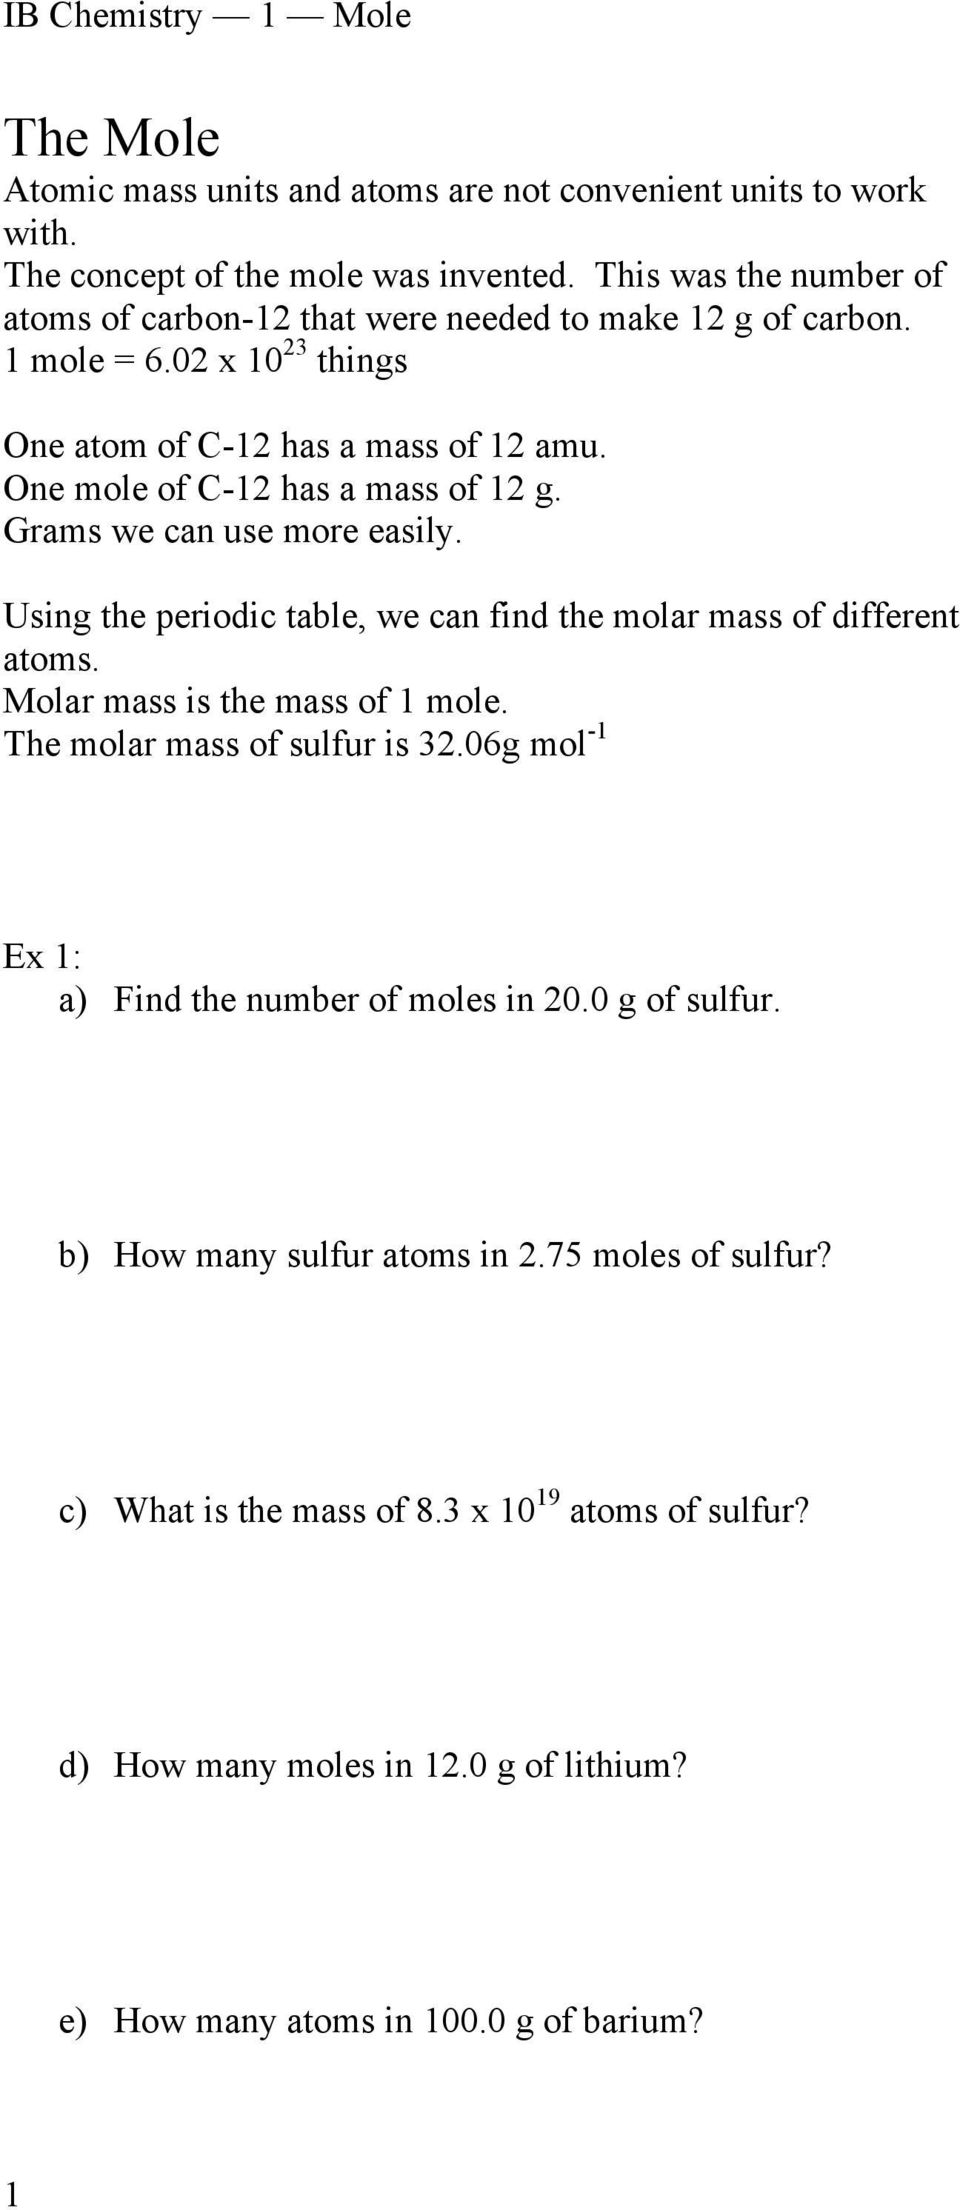 One mole of C-12 has a mass of 12 g. Grams we can use more easily. Using the periodic table, we can find the molar mass of different atoms. Molar mass is the mass of 1 mole.